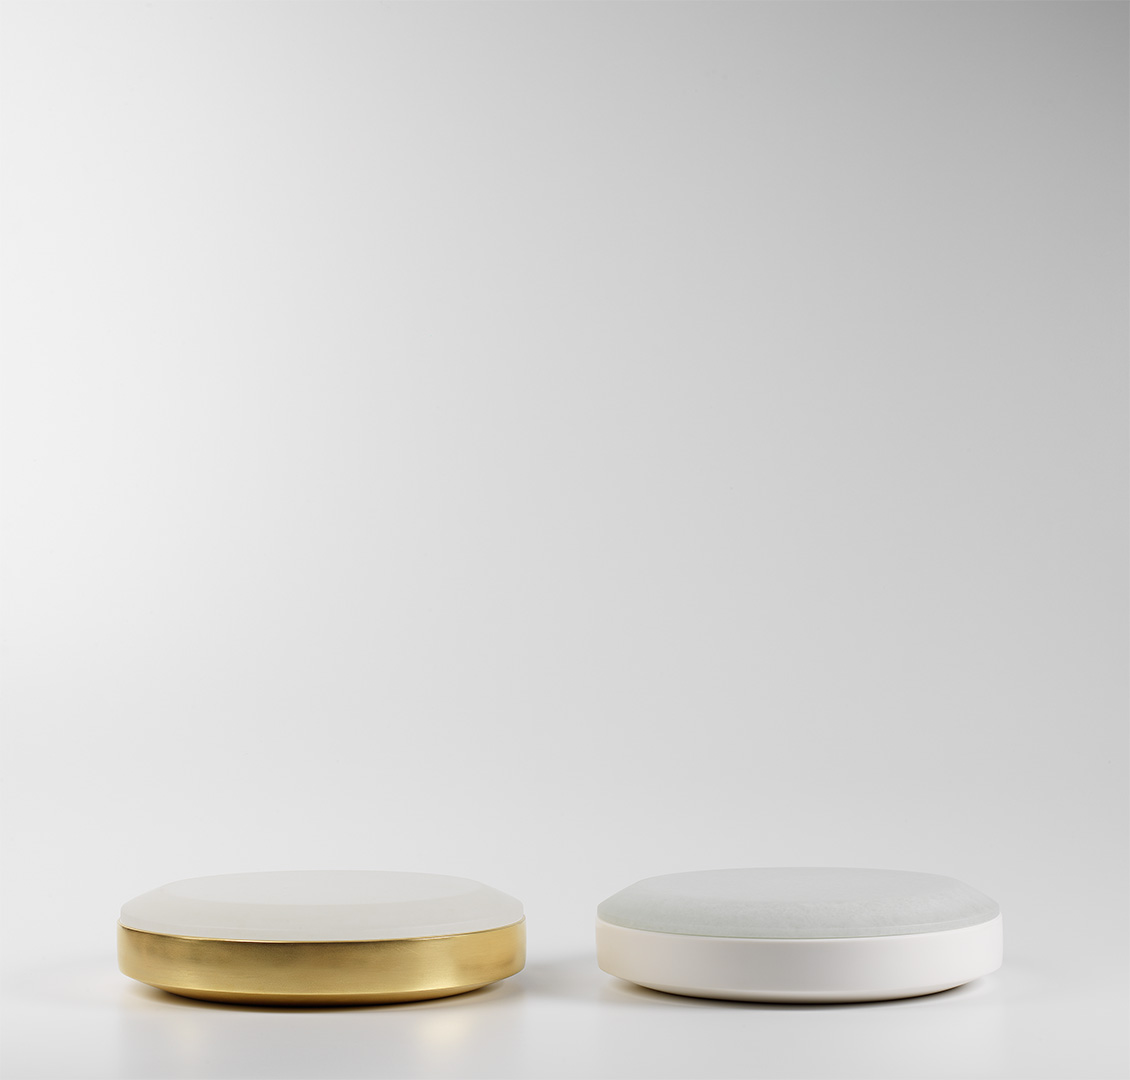 Pair of Large Round Boxes with 22ct Burnished Gold,